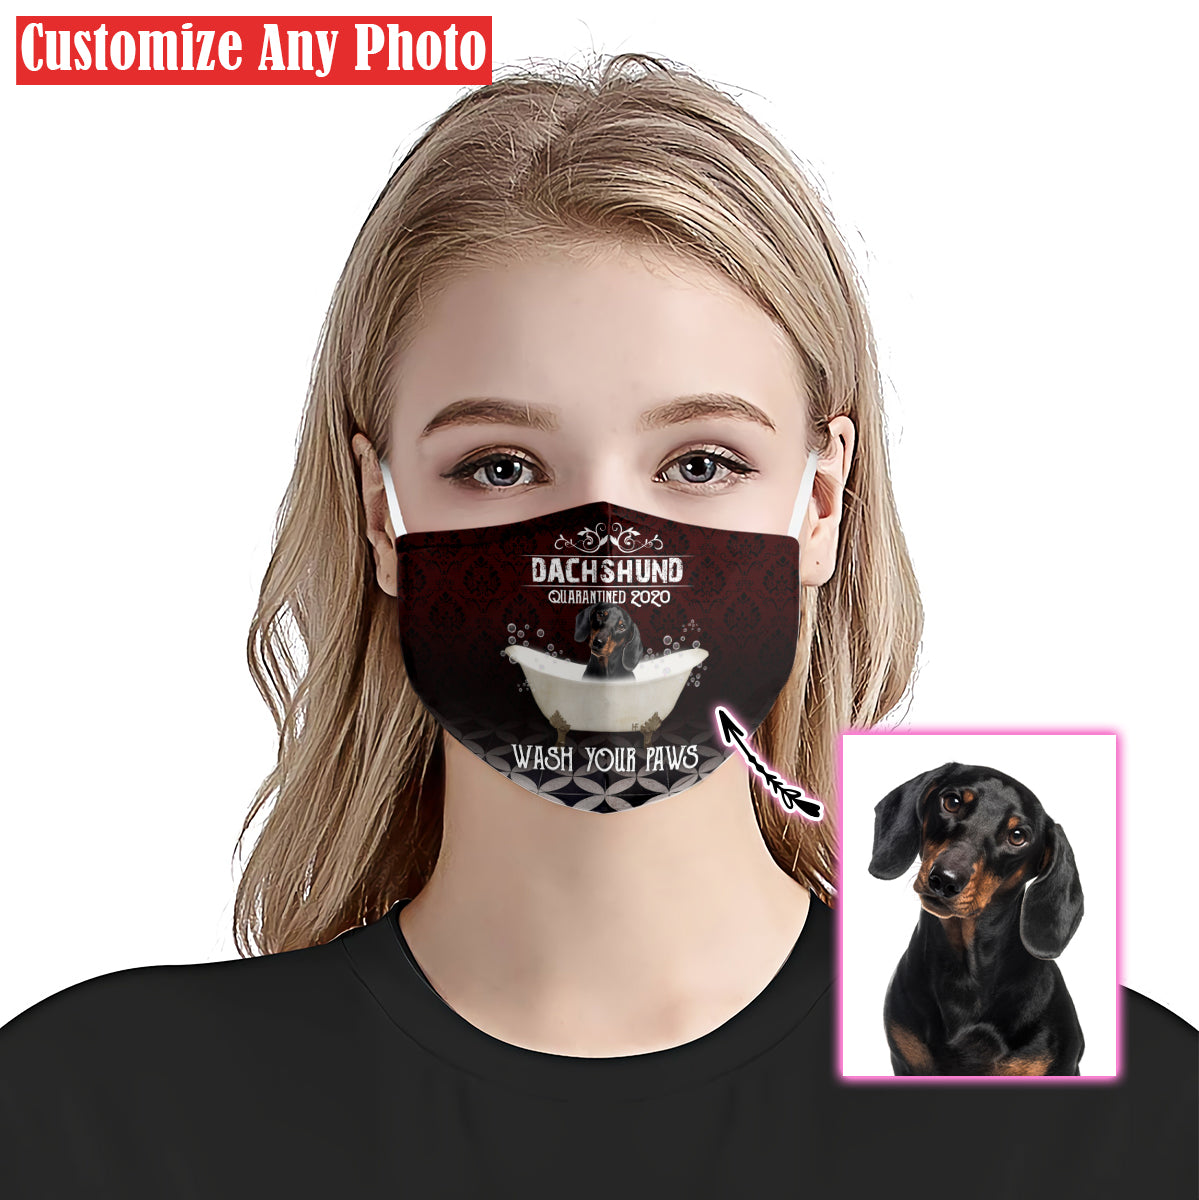 Personalized Dachshund Wash Your Paws Quarantine 2020 EZ07 2805 Custom Face Mask - Hyperfavor